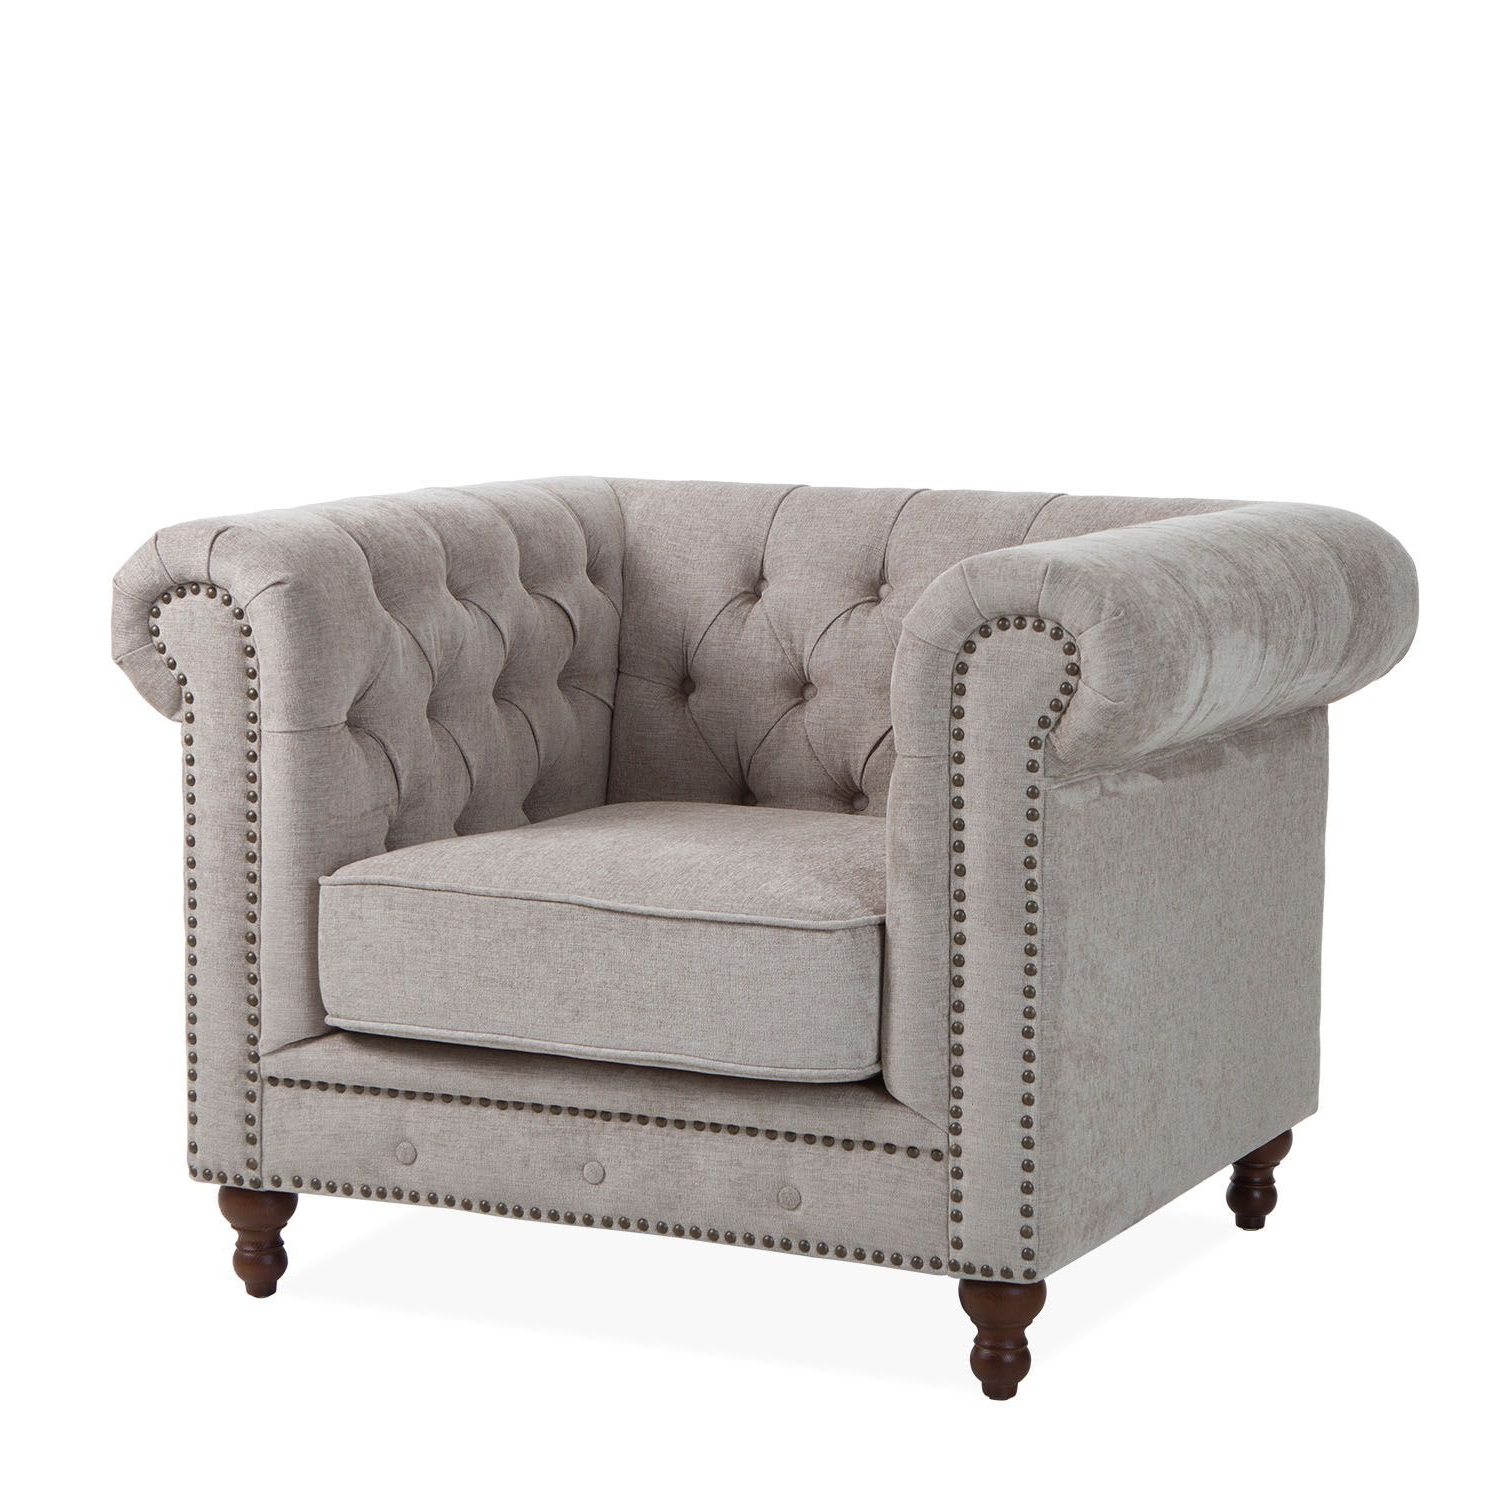 Sillon Chester Irdz Sillà N Chester Fabric Hogar Pinterest Chester Chesterfield